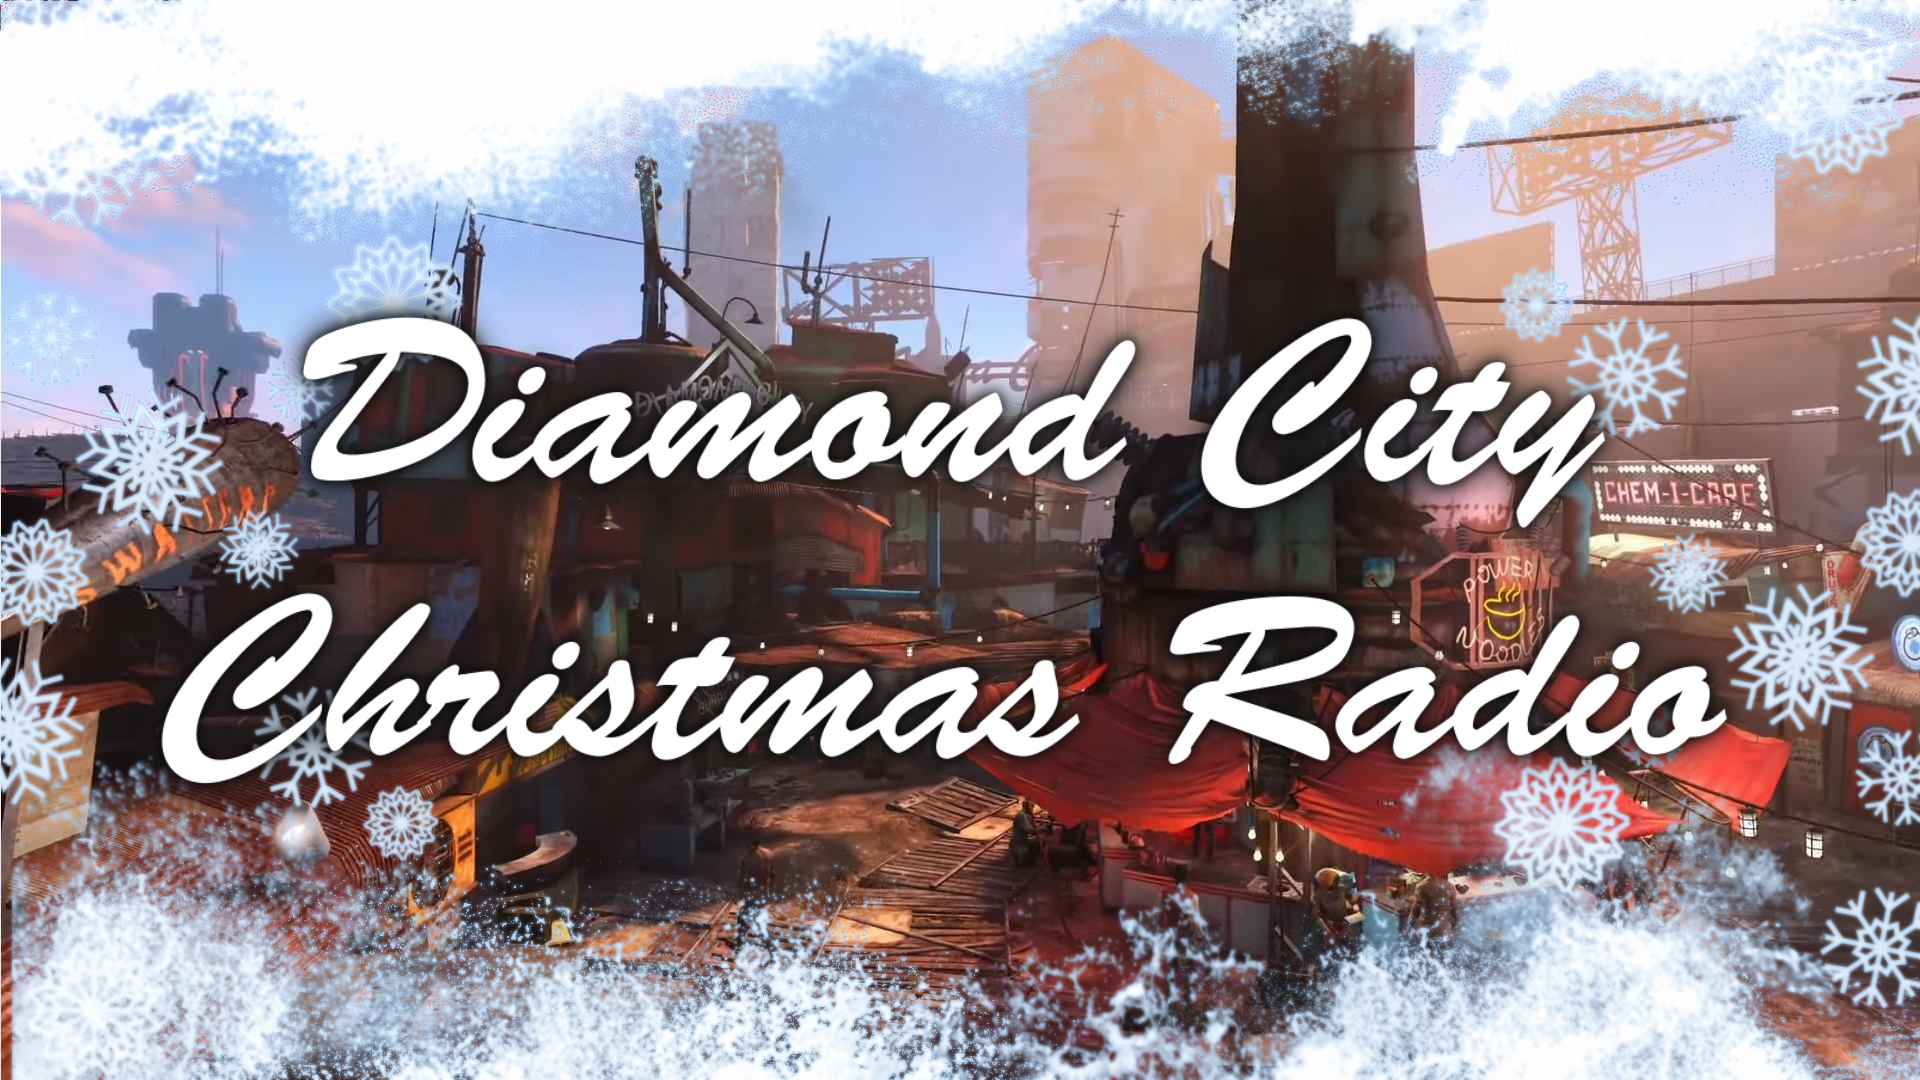 Diamond City Christmas Radio replacement at Fallout 4 Nexus - Mods ...